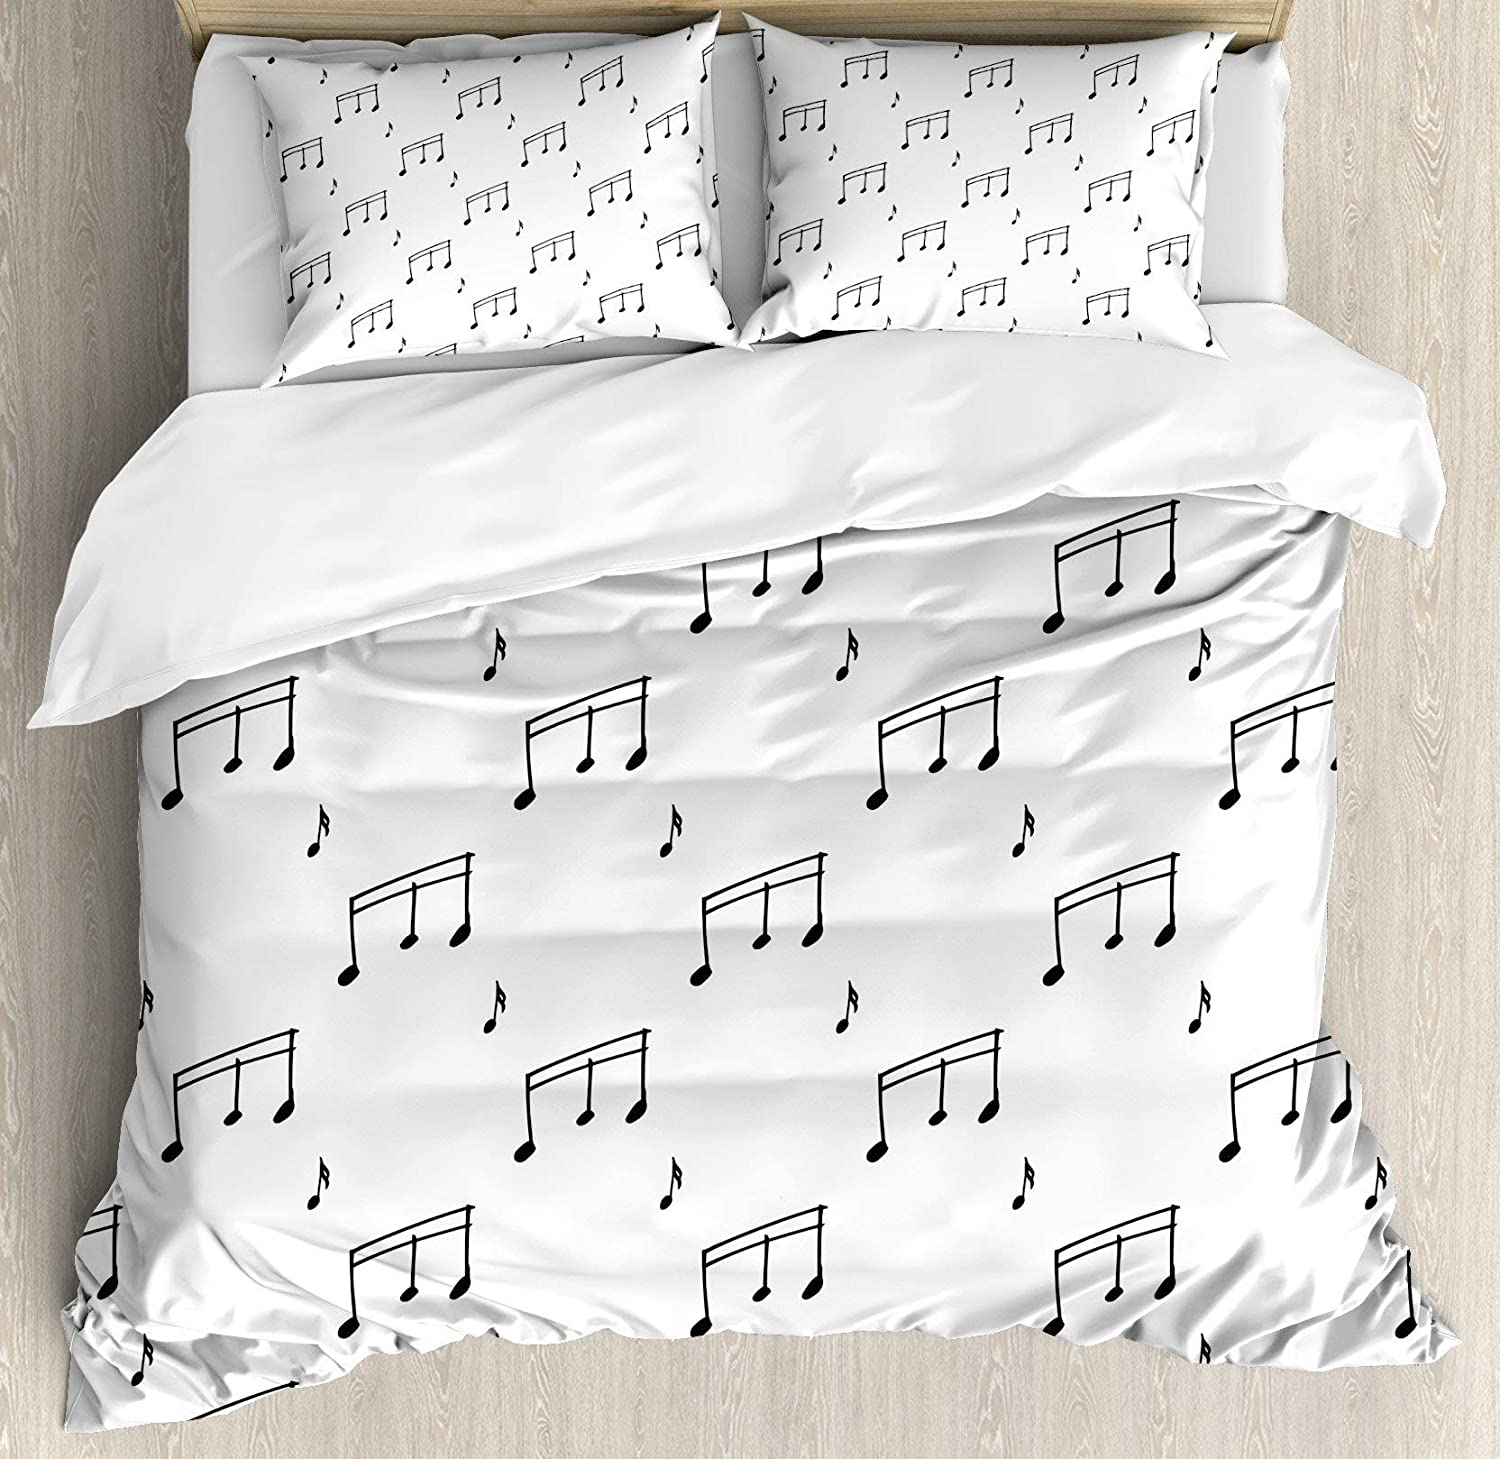 USOPHIA Music 4 Pieces Bed Sheets Set Full Size, Musical Notes Theme Melody Sonata Singing Song Clef Tunes Hand Drawn Style Pattern Floral Duvet Cover Set, Charcoal Grey